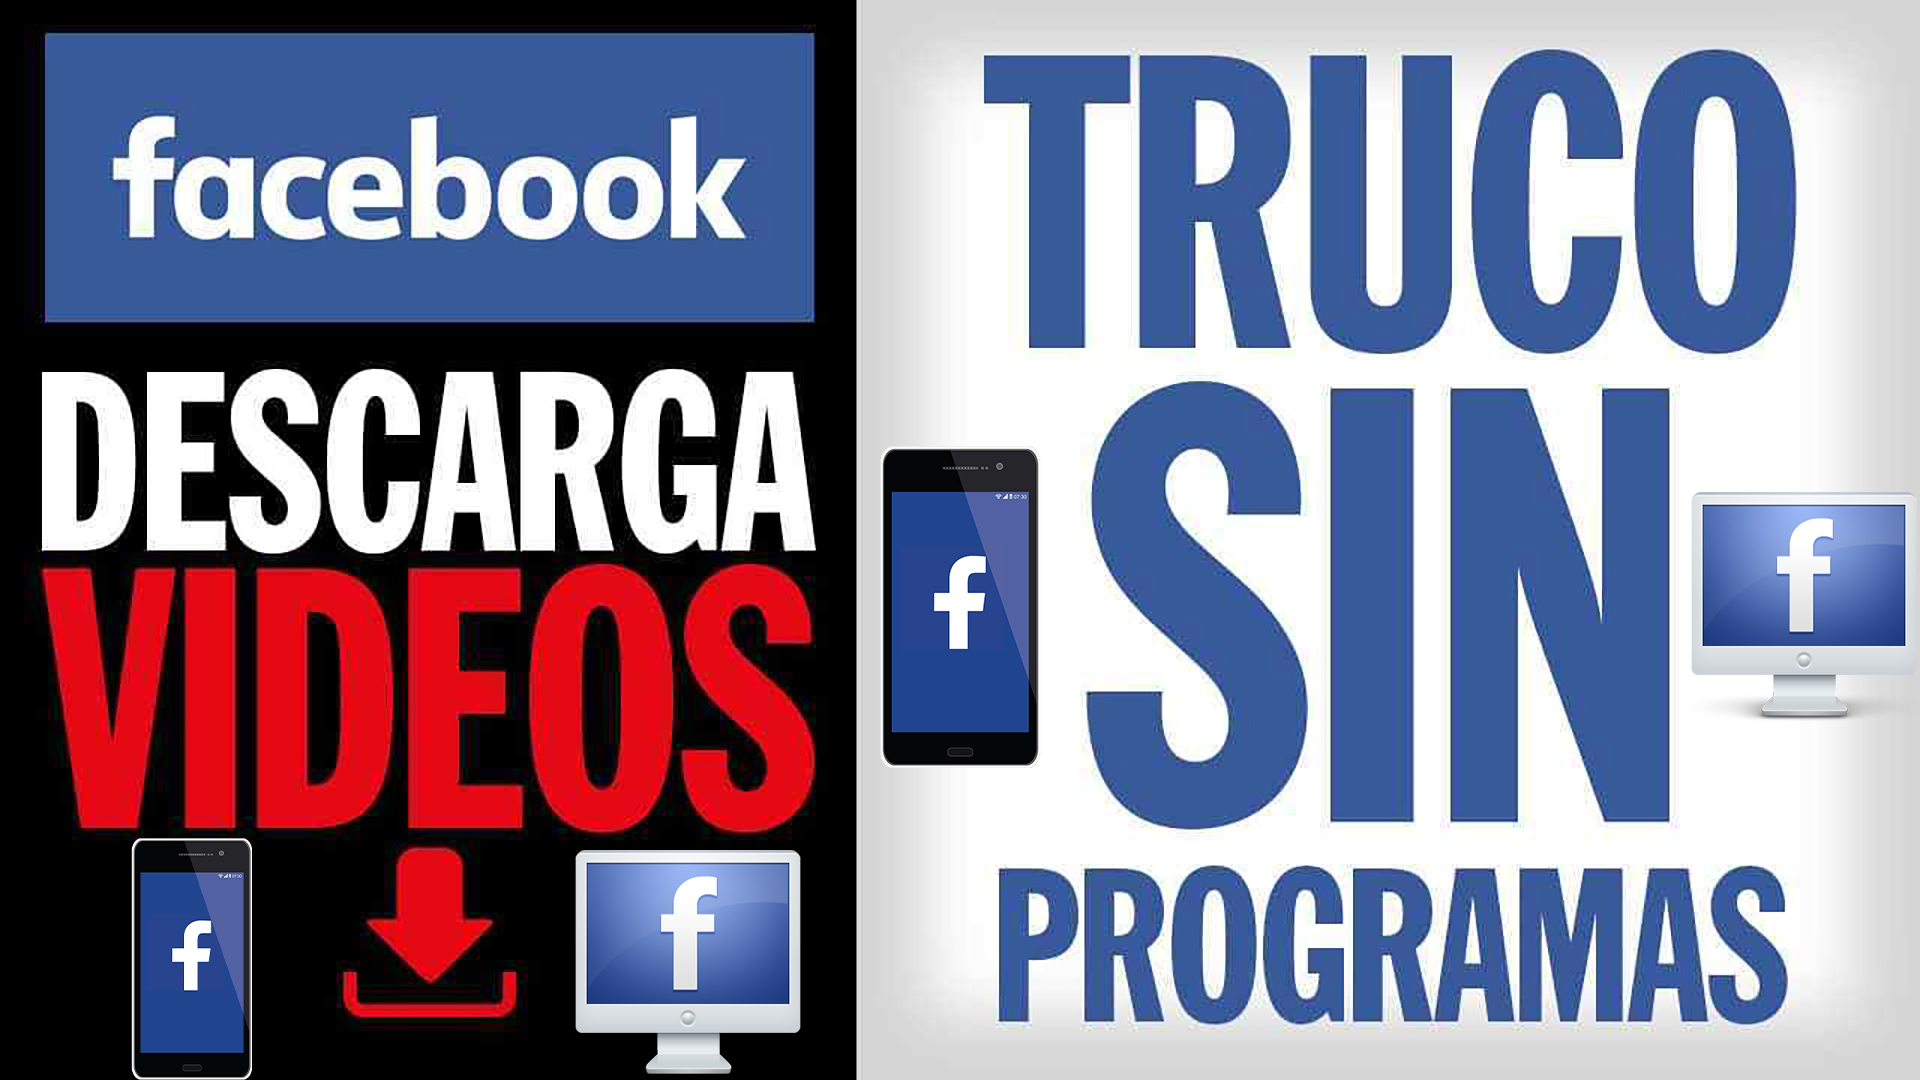 DESCARGAR VIDEOS DE FACEBOOK | ANDROID / PC | Sin Instalar Nada